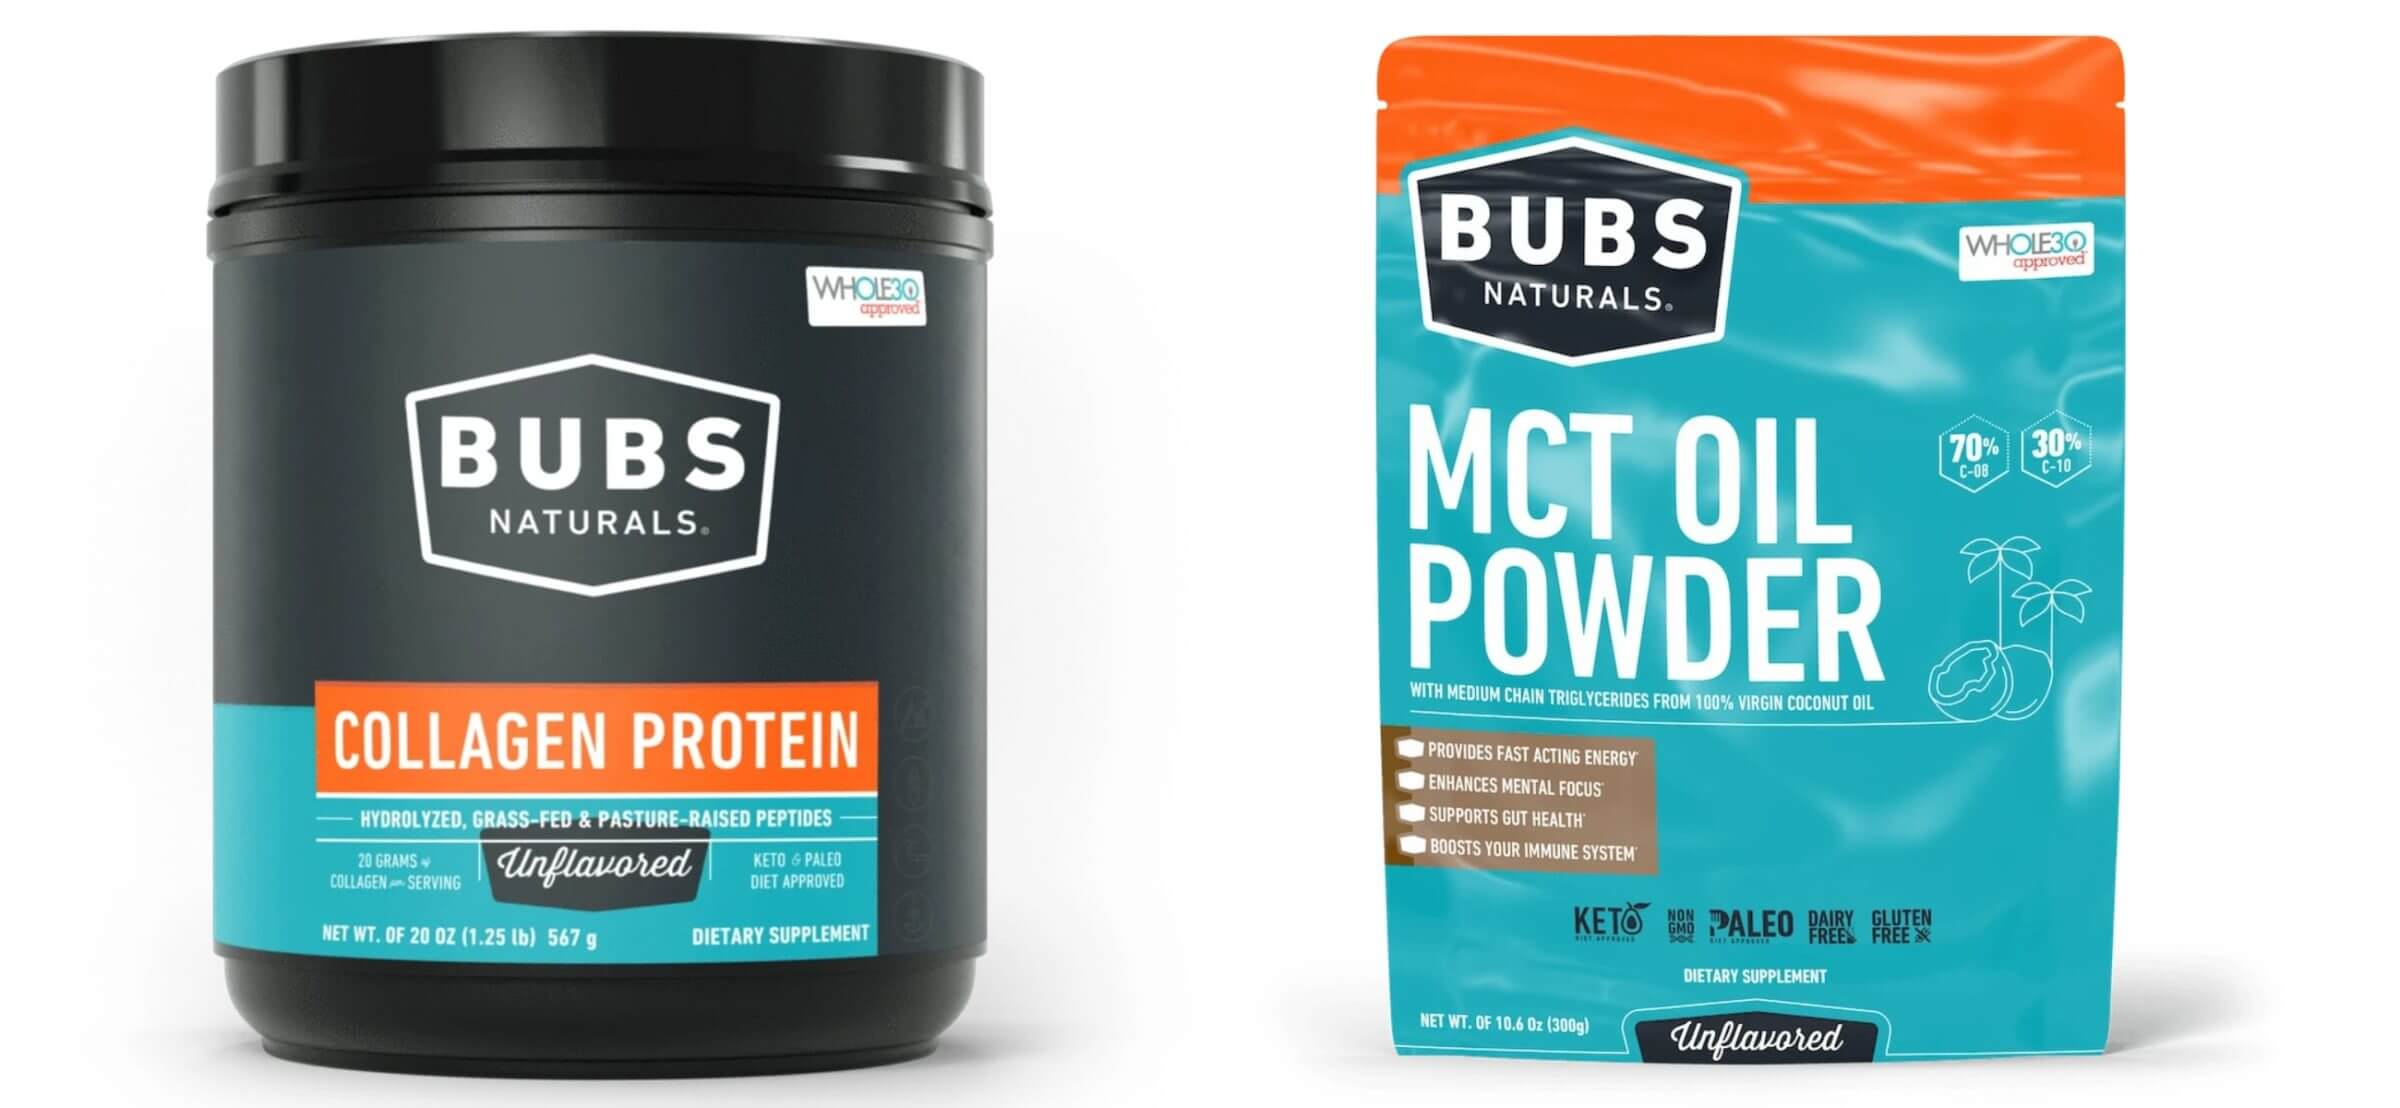 Bubs Naturals MCT Oil Powder and Collagen Protein.